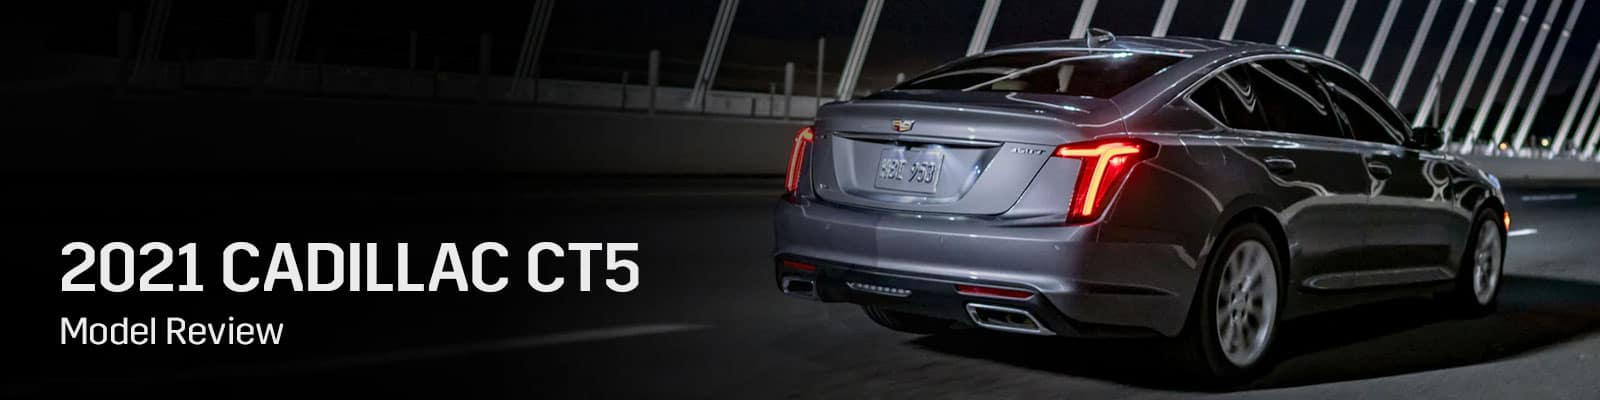 2021 Cadillac CT5 Model Overview - Germain Cadillac of Easton